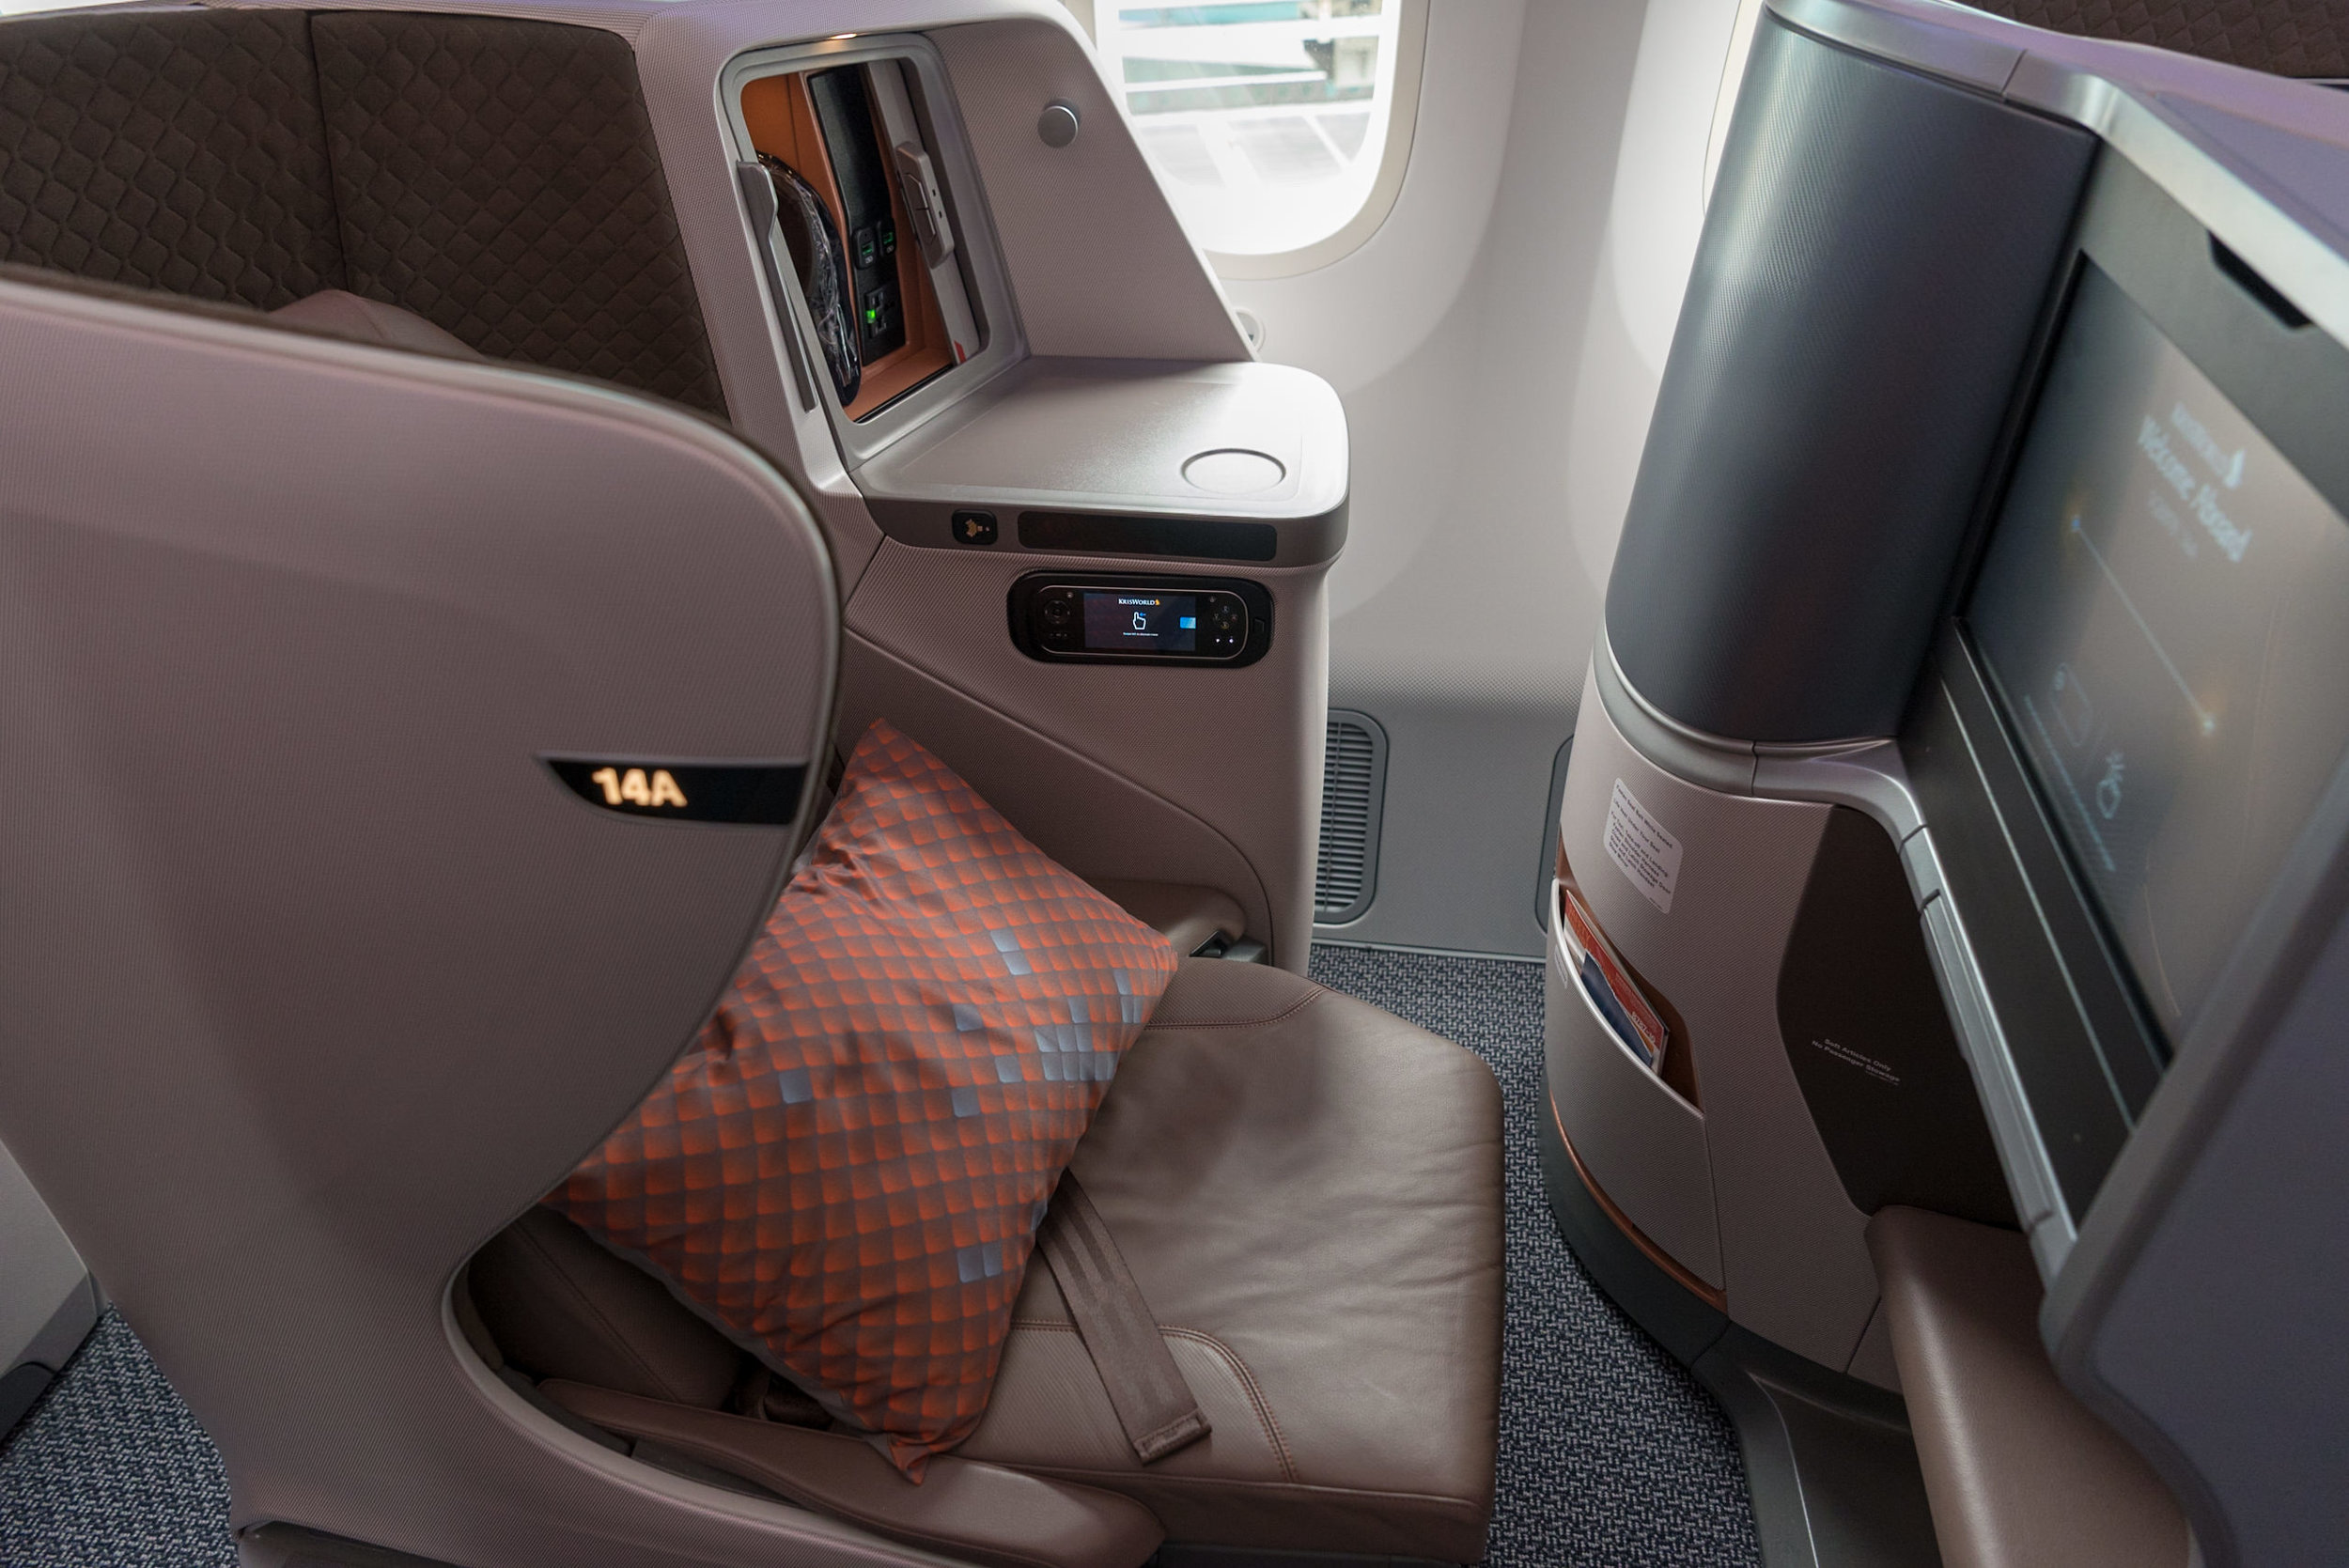 Seat 14A  New Regional Business Class (2018) - Singapore Airlines